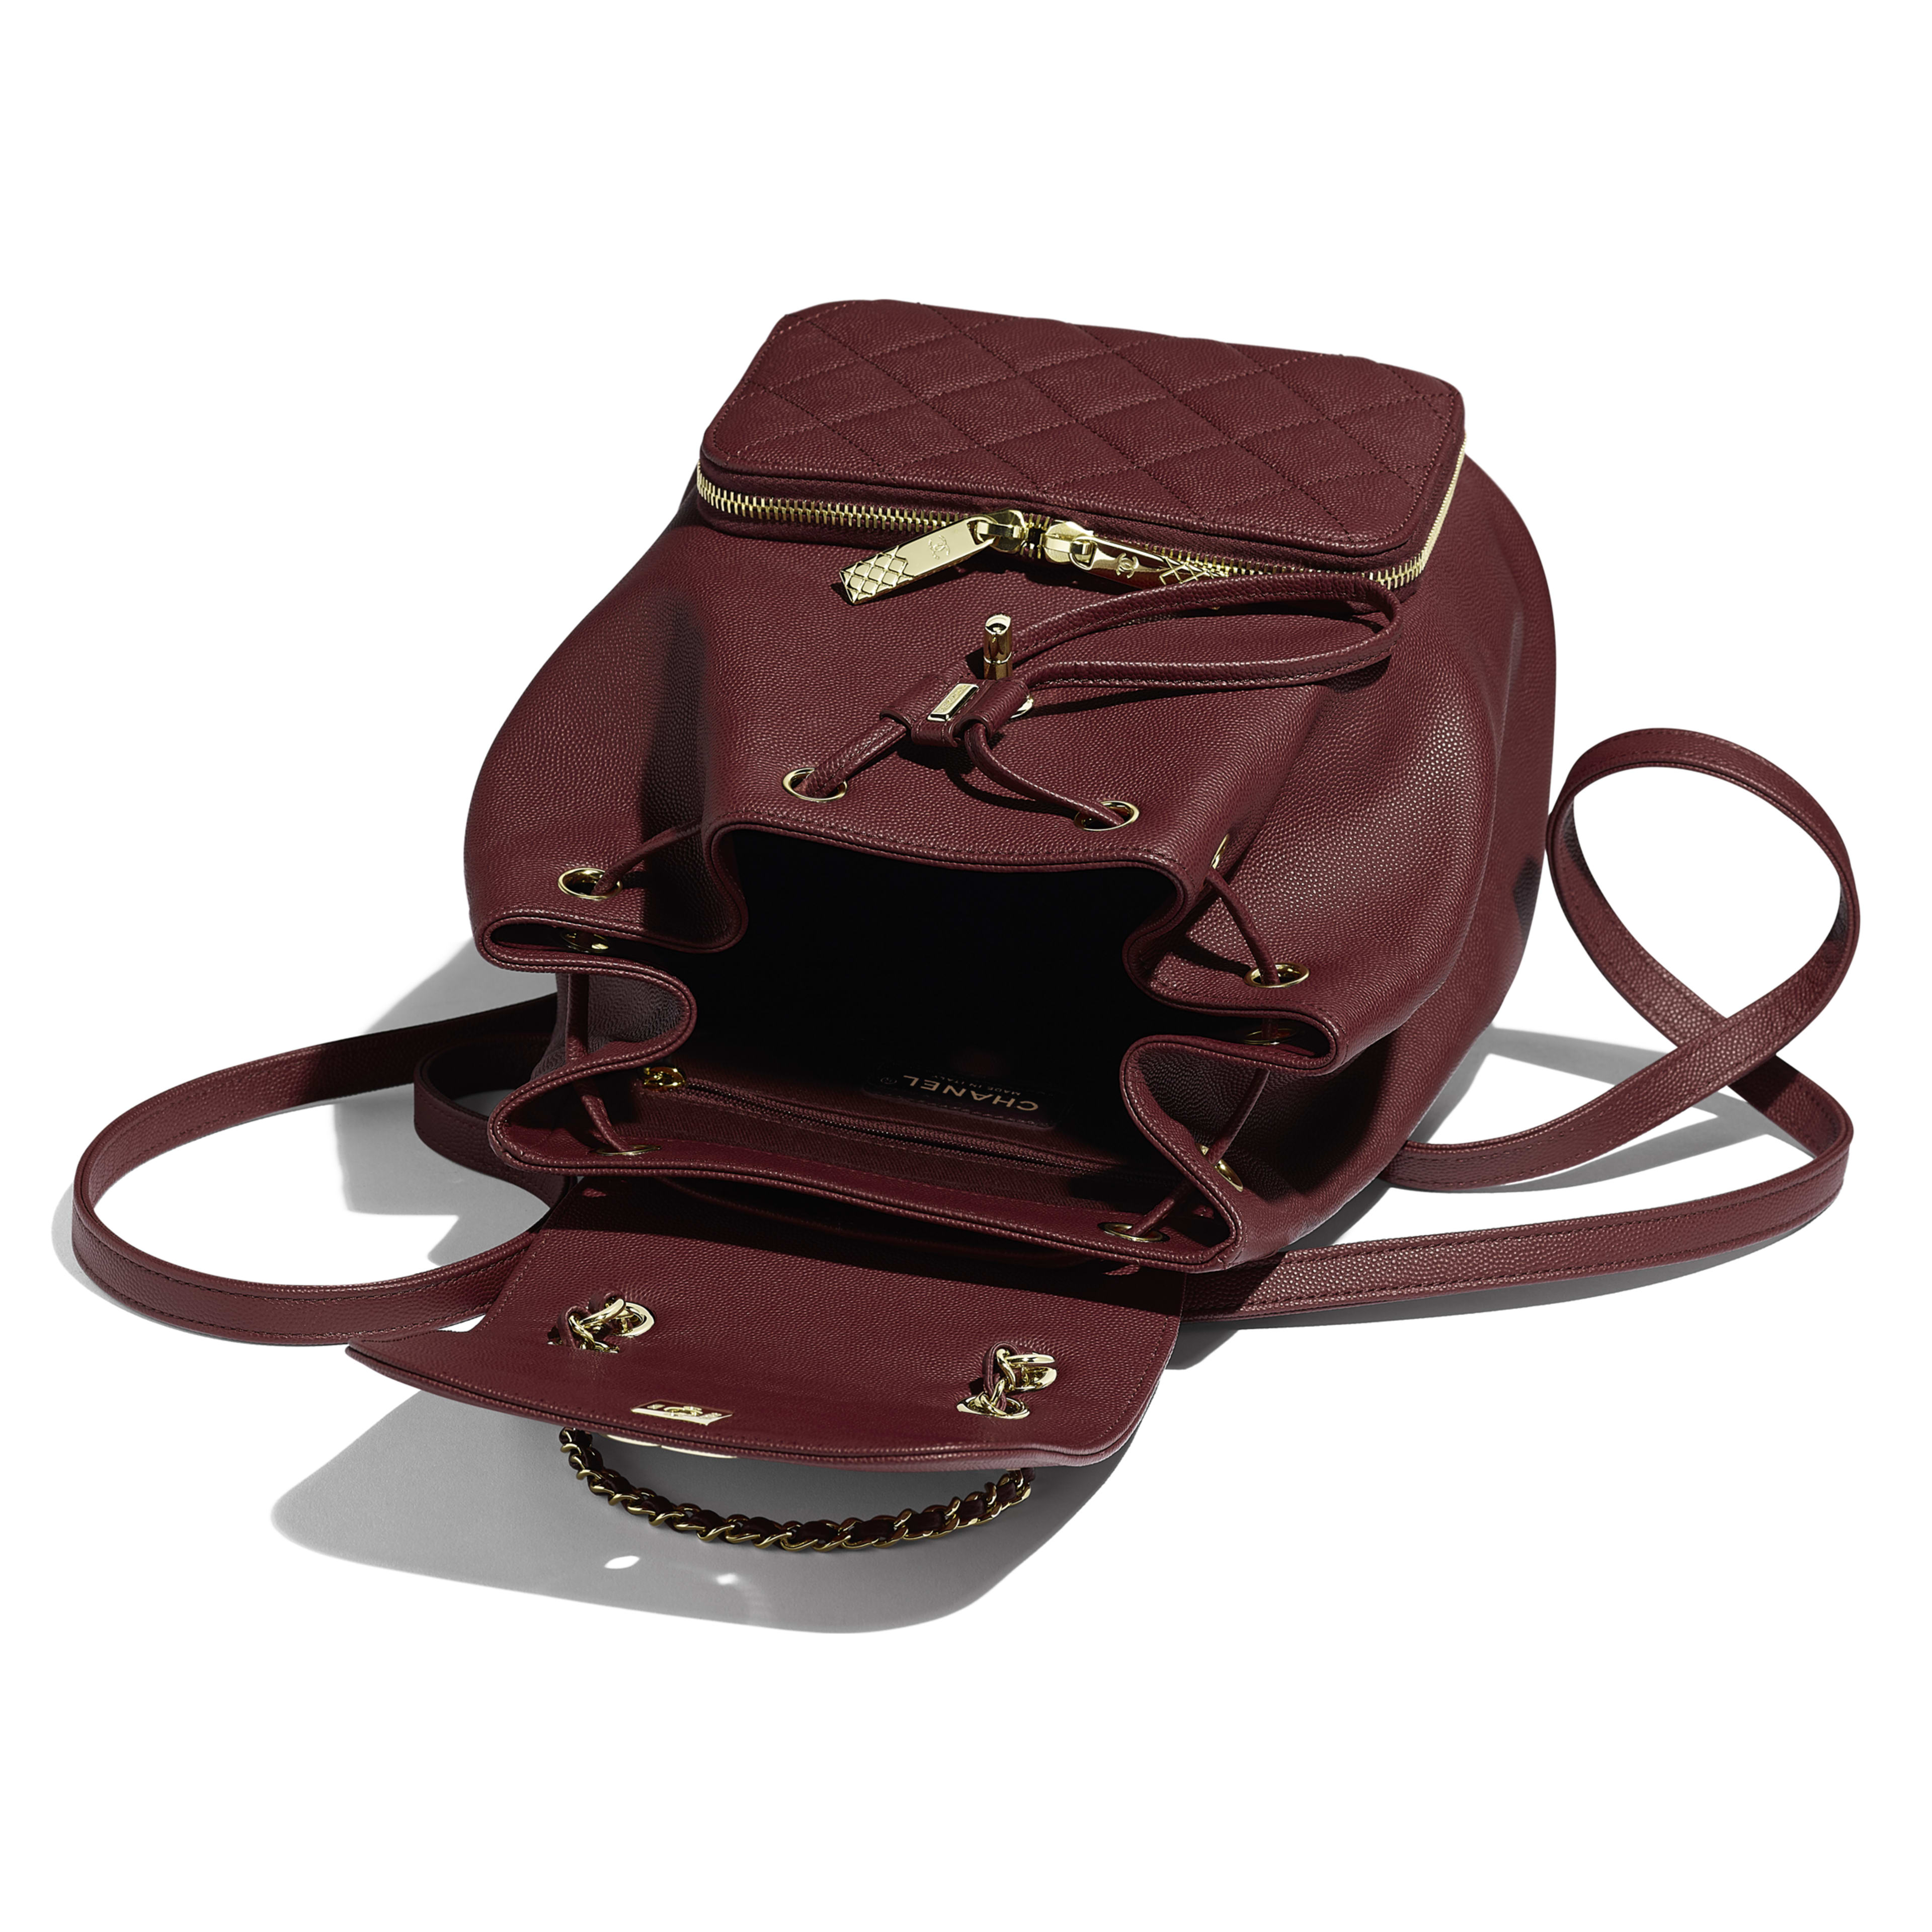 Backpack - Burgundy - Grained Calfskin & Gold-Tone Metal - Other view - see full sized version